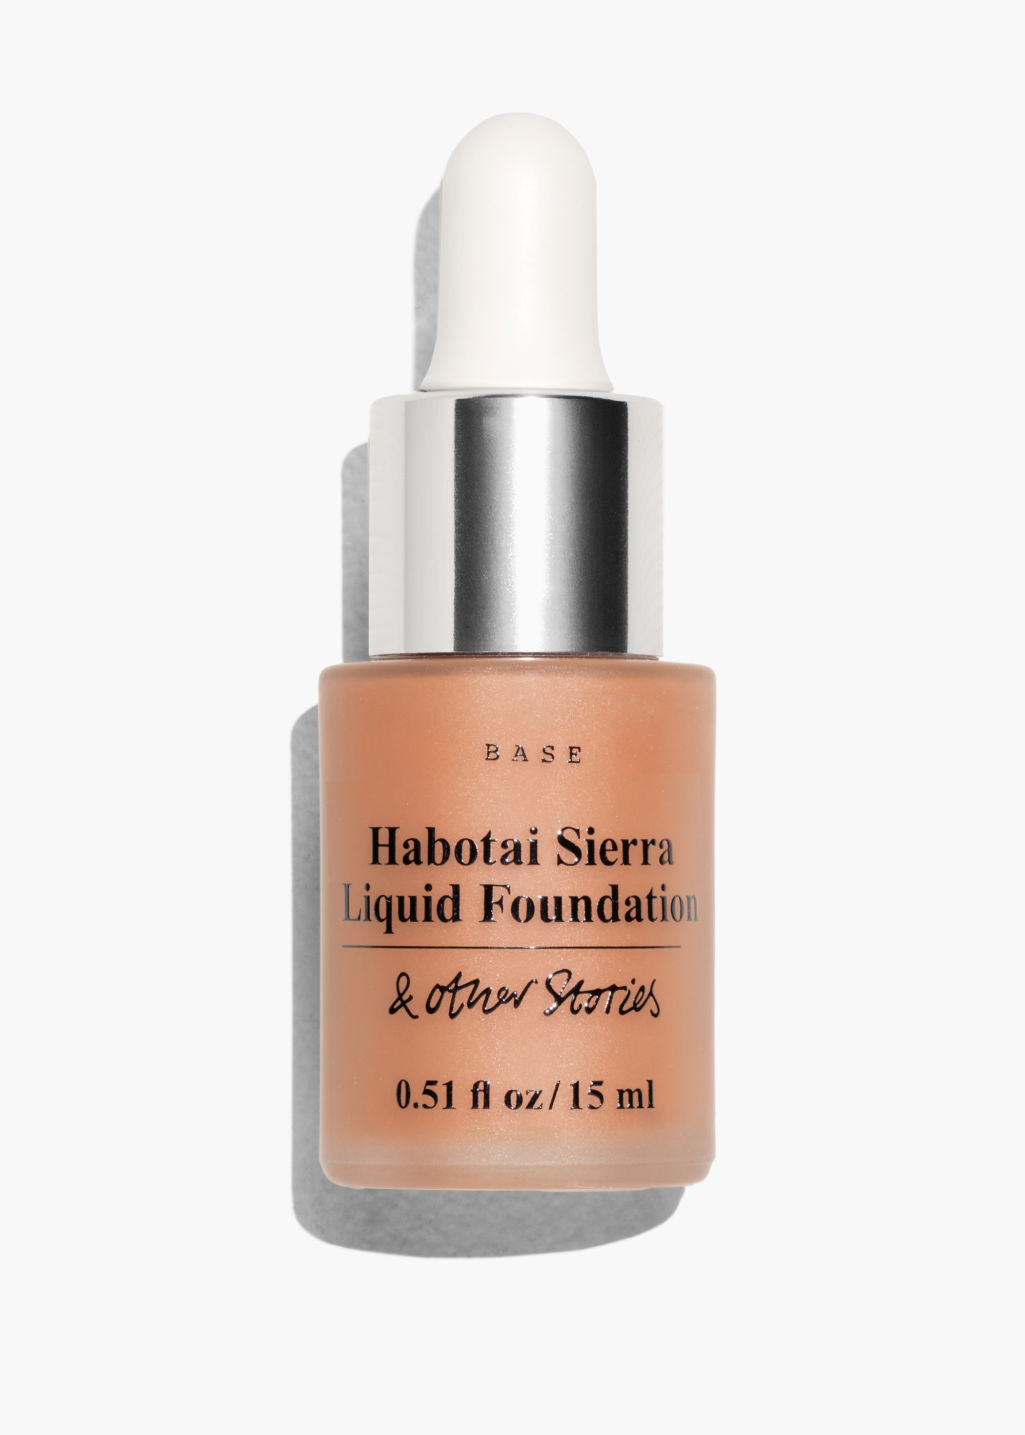 Liquid Foundation Hobotai Sierre Make Up Other Stories Over Front Image Of In Orange